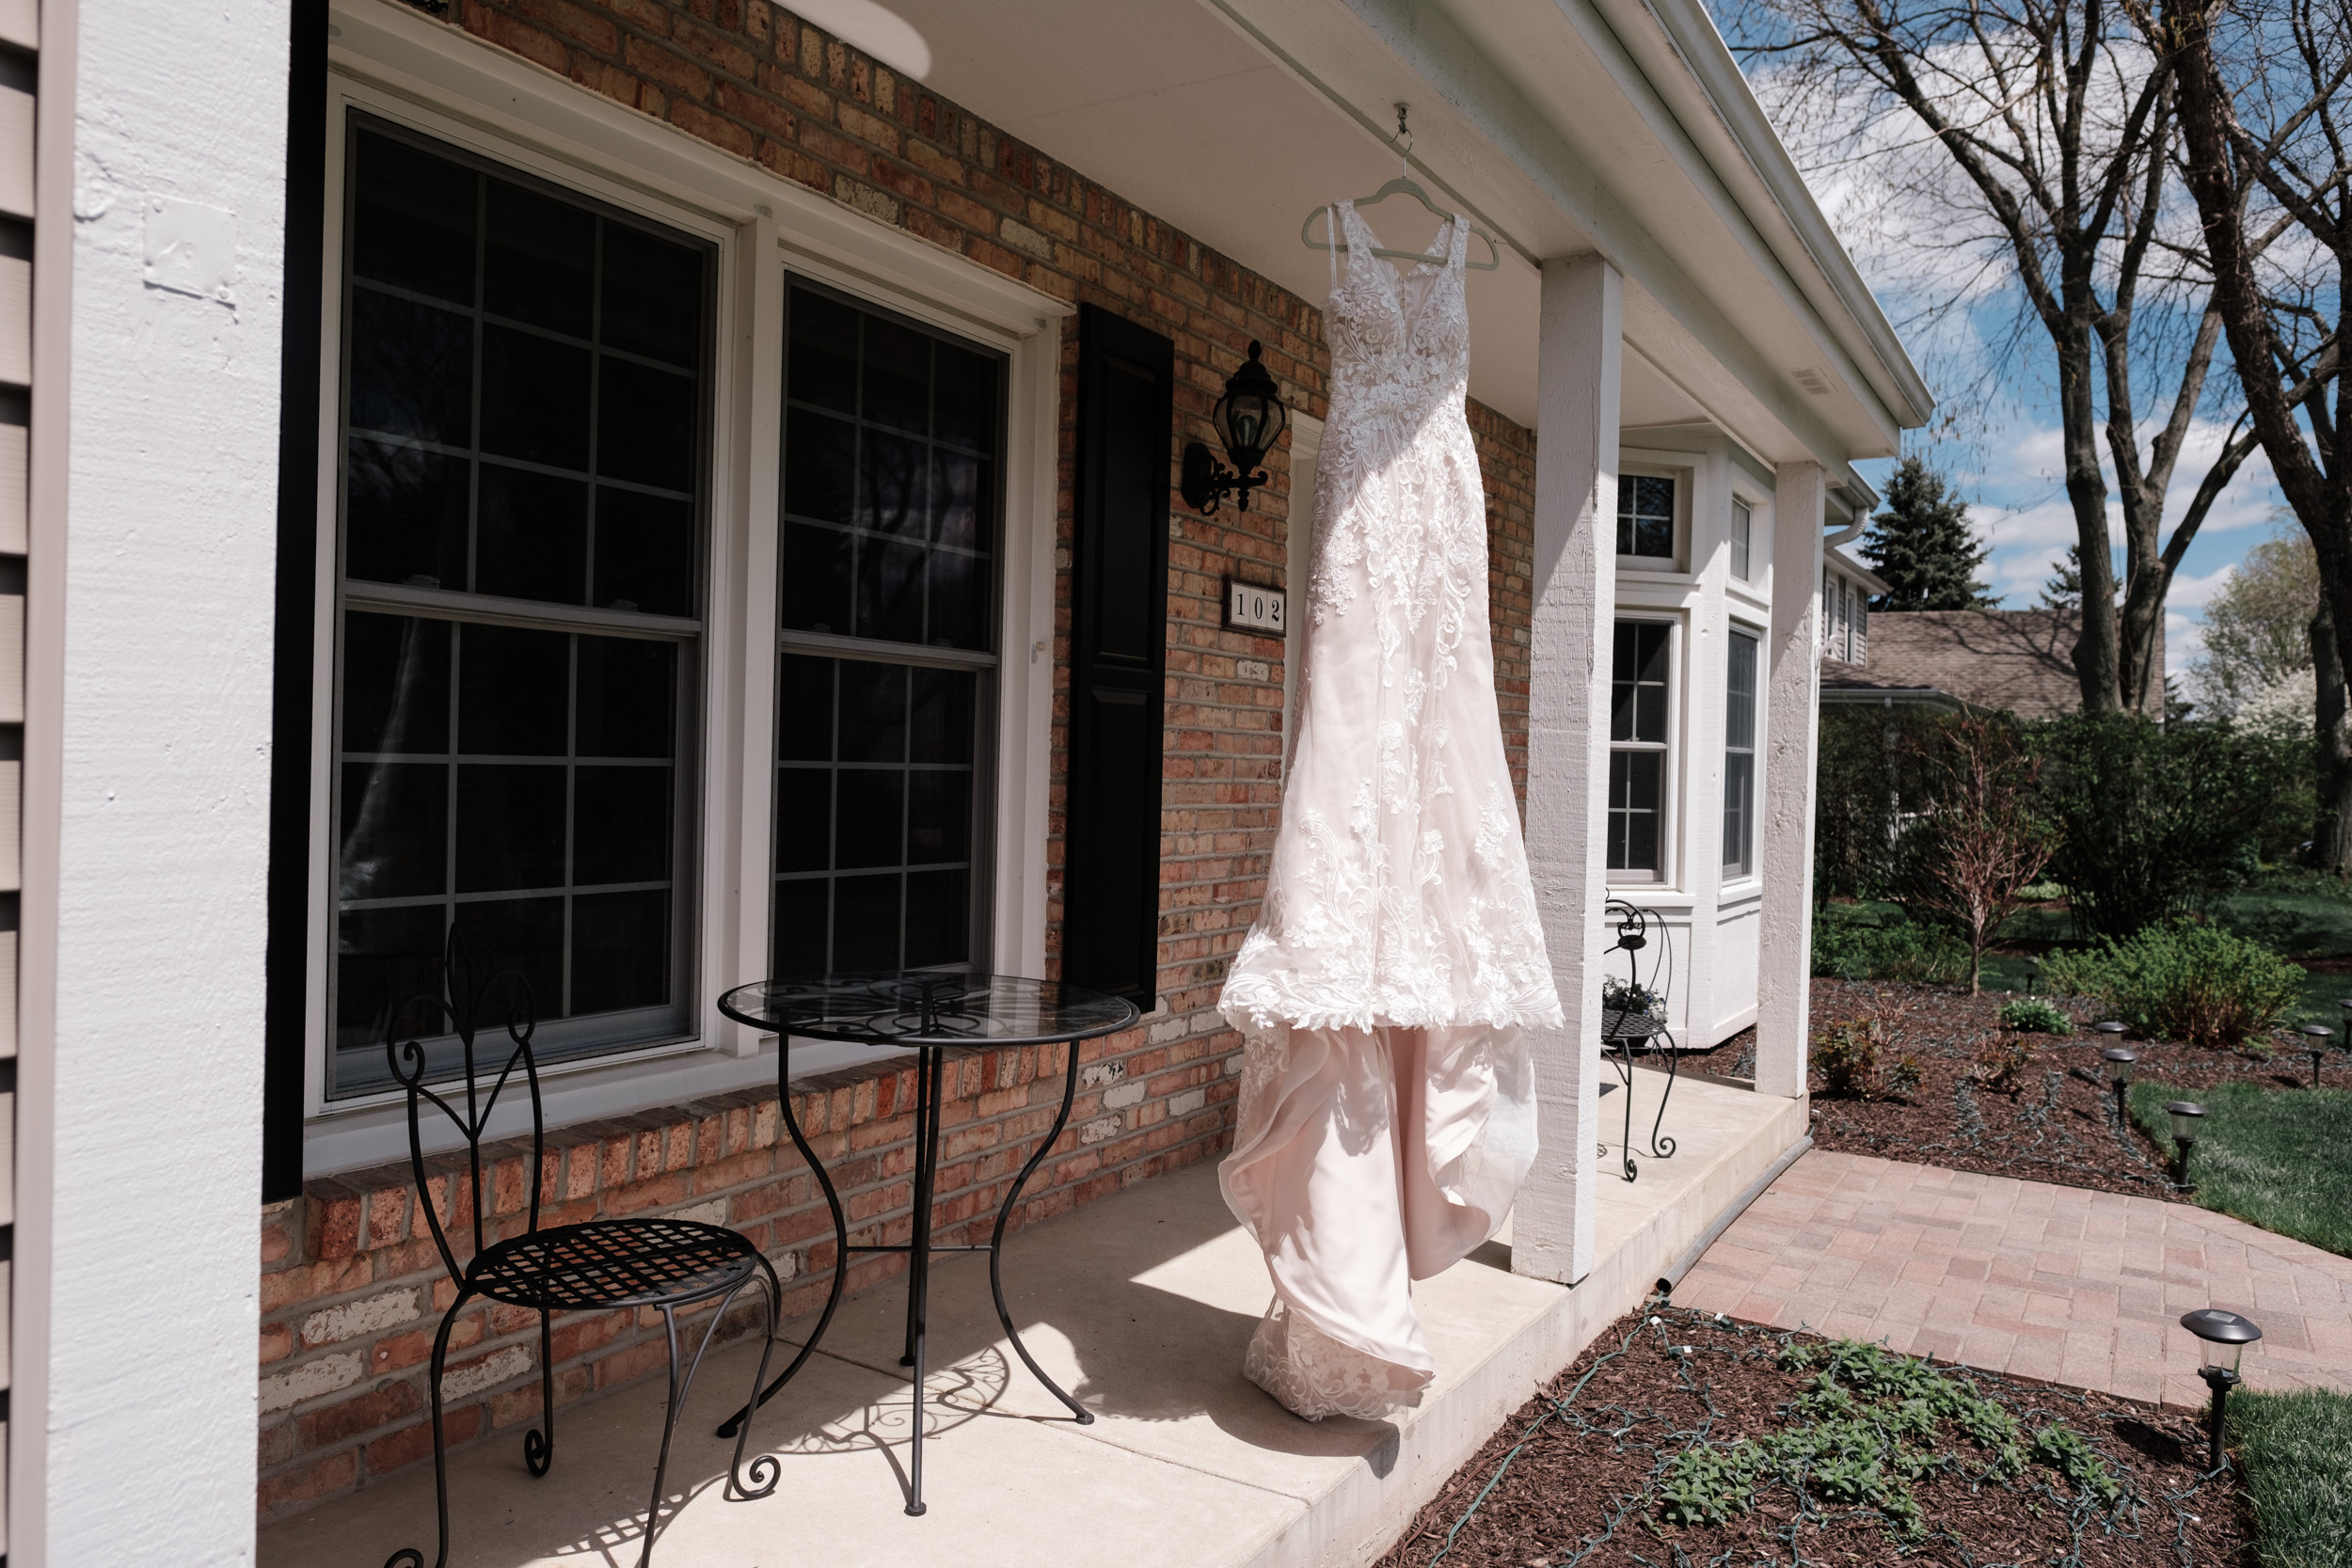 Bride dress hanging on front porch of childhood home in crystal lake